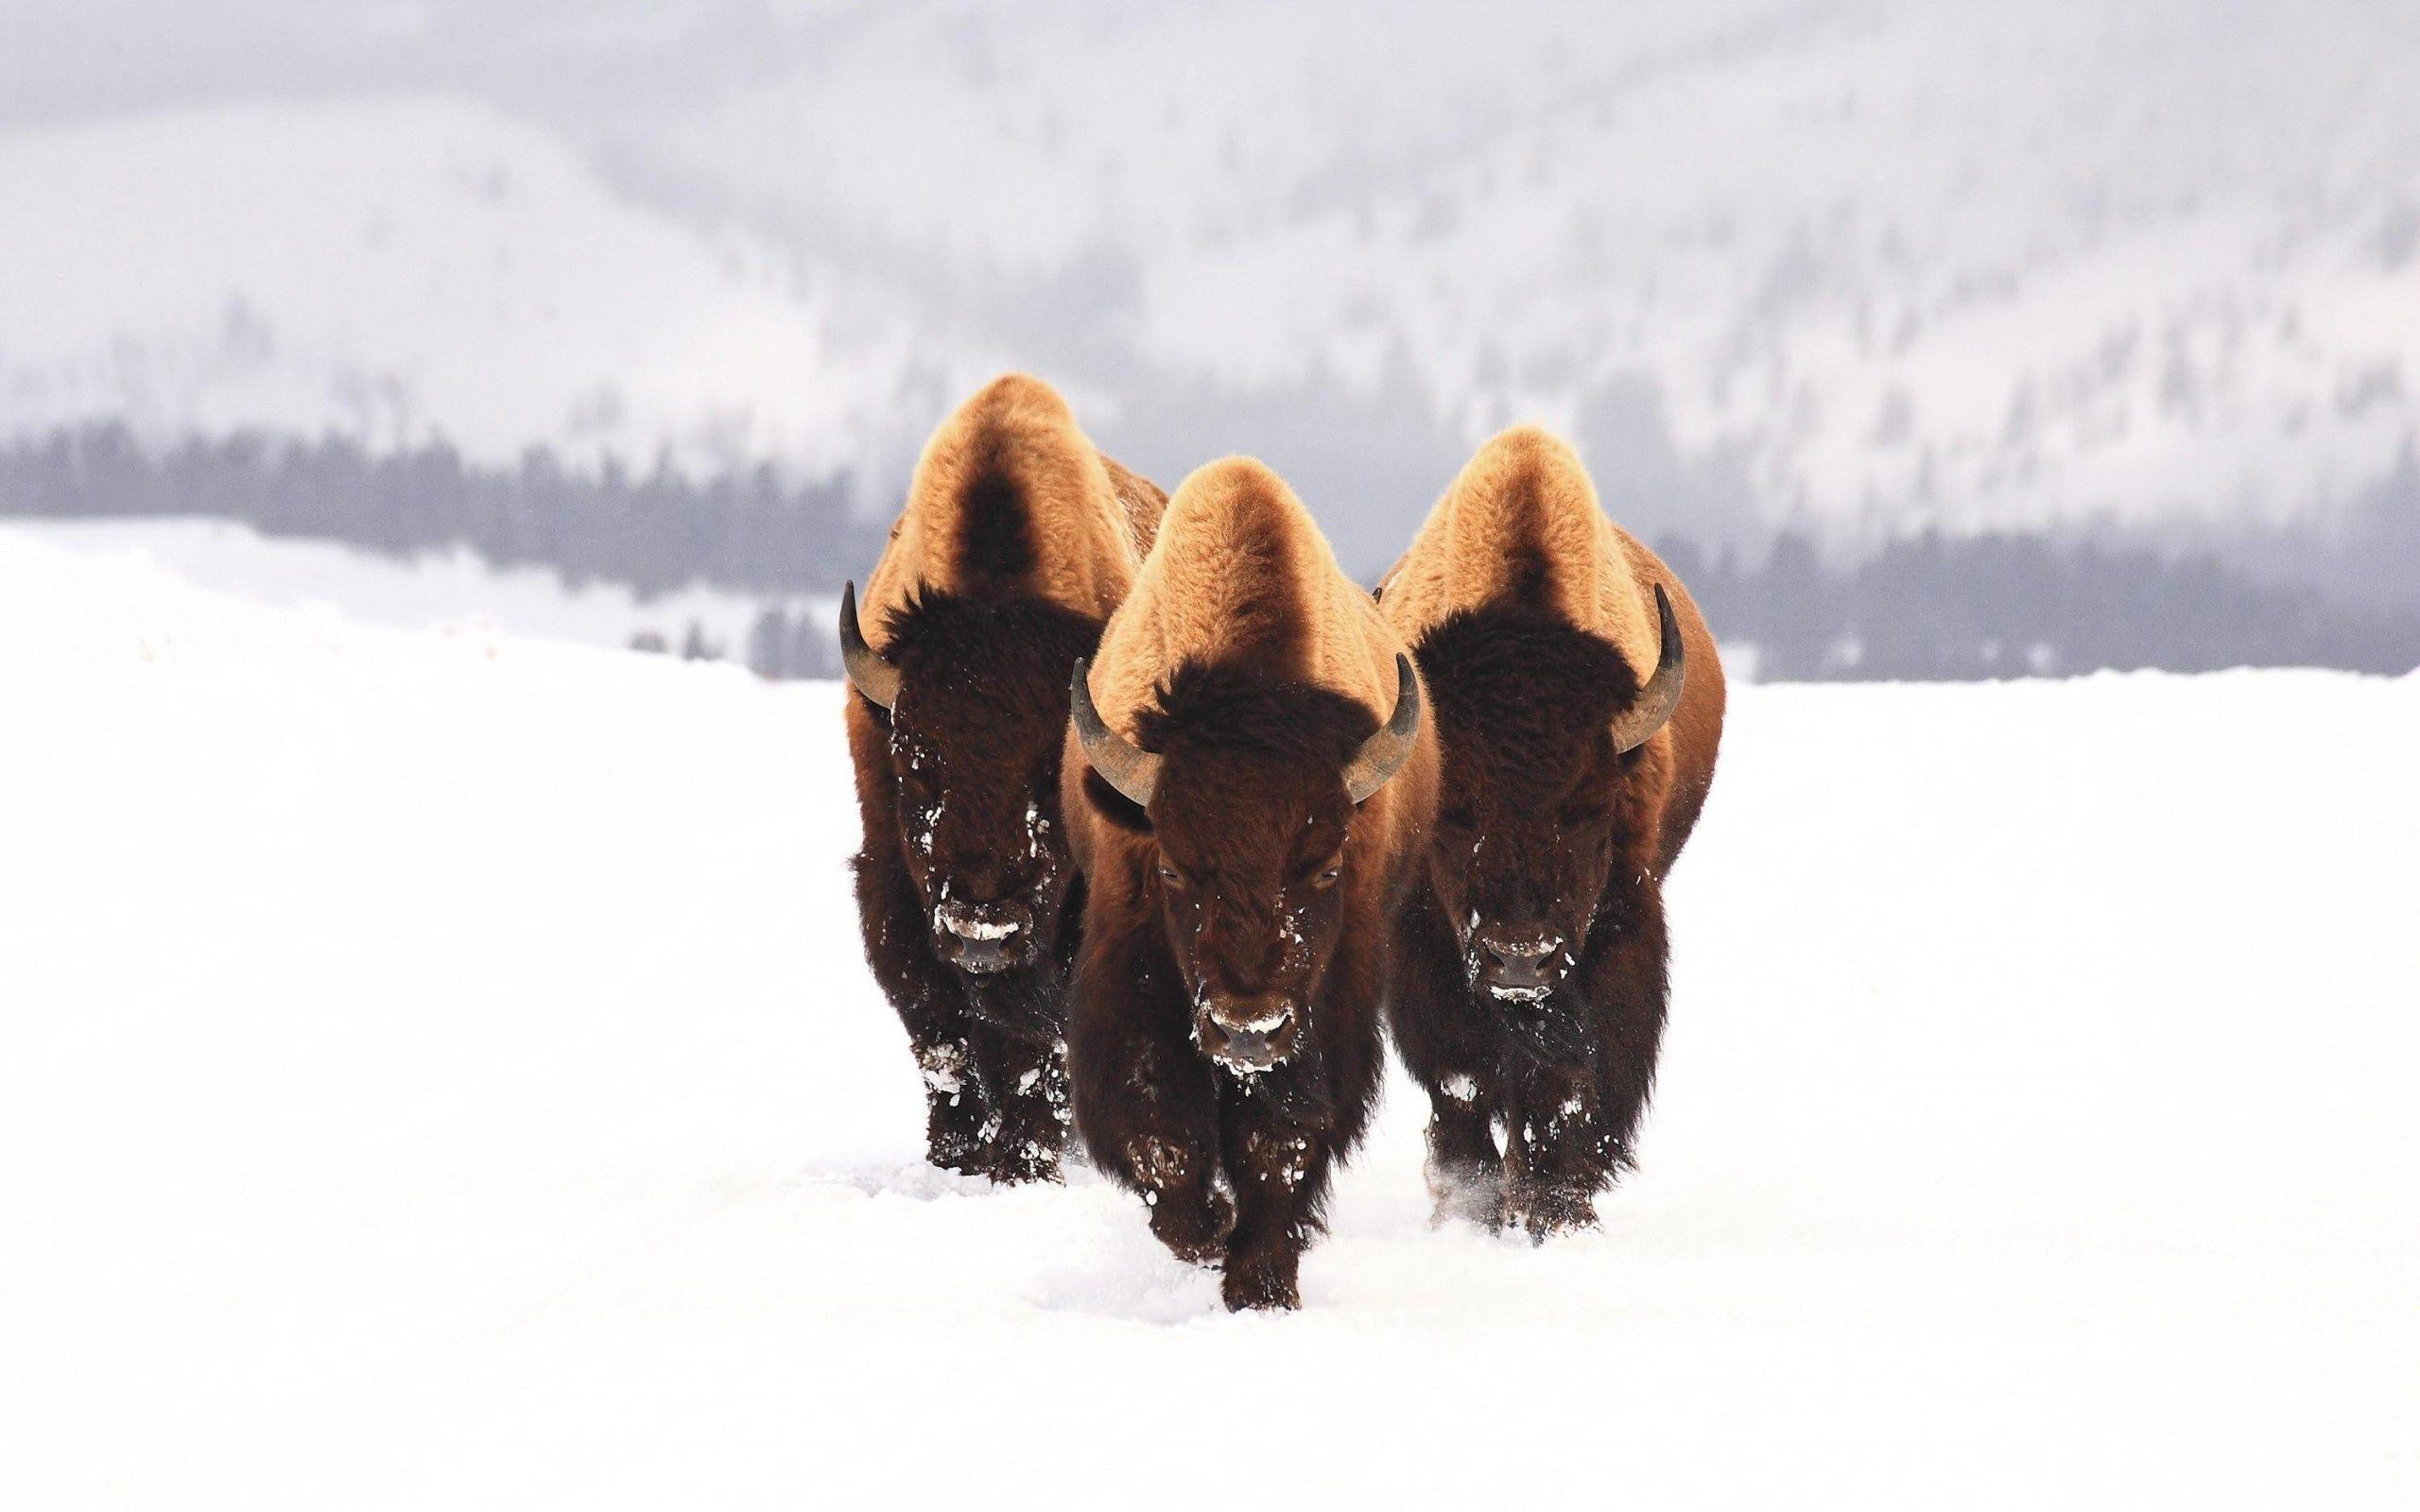 Image For > American Bison Wallpapers